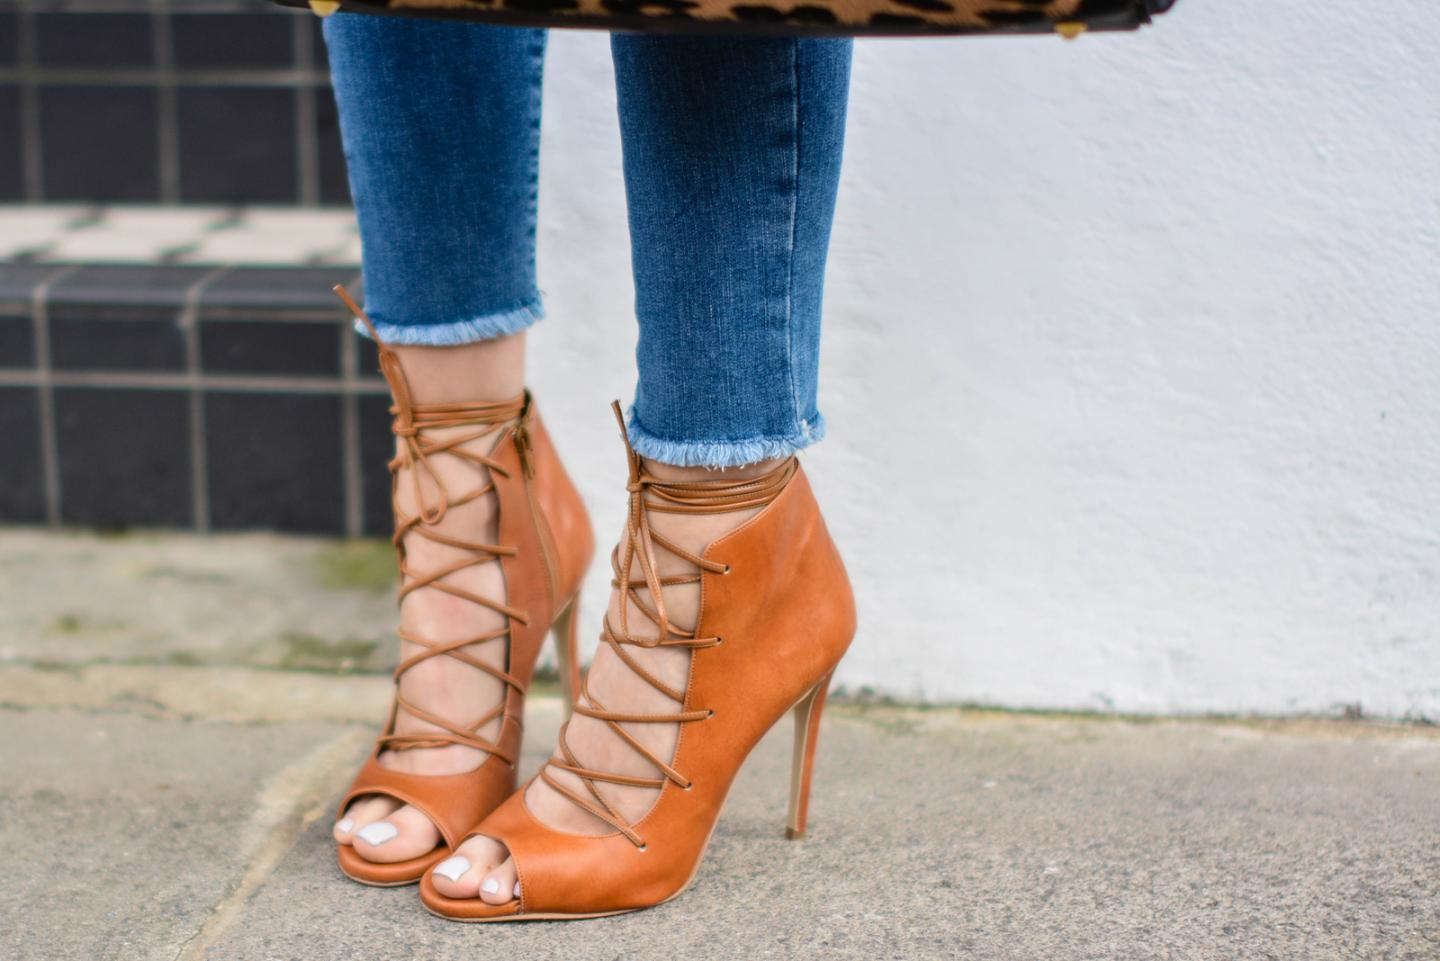 EJSTYLE - Emma Hill, Sante Shoes tan leather lace up sandals, raw hem River Island skinny jeans